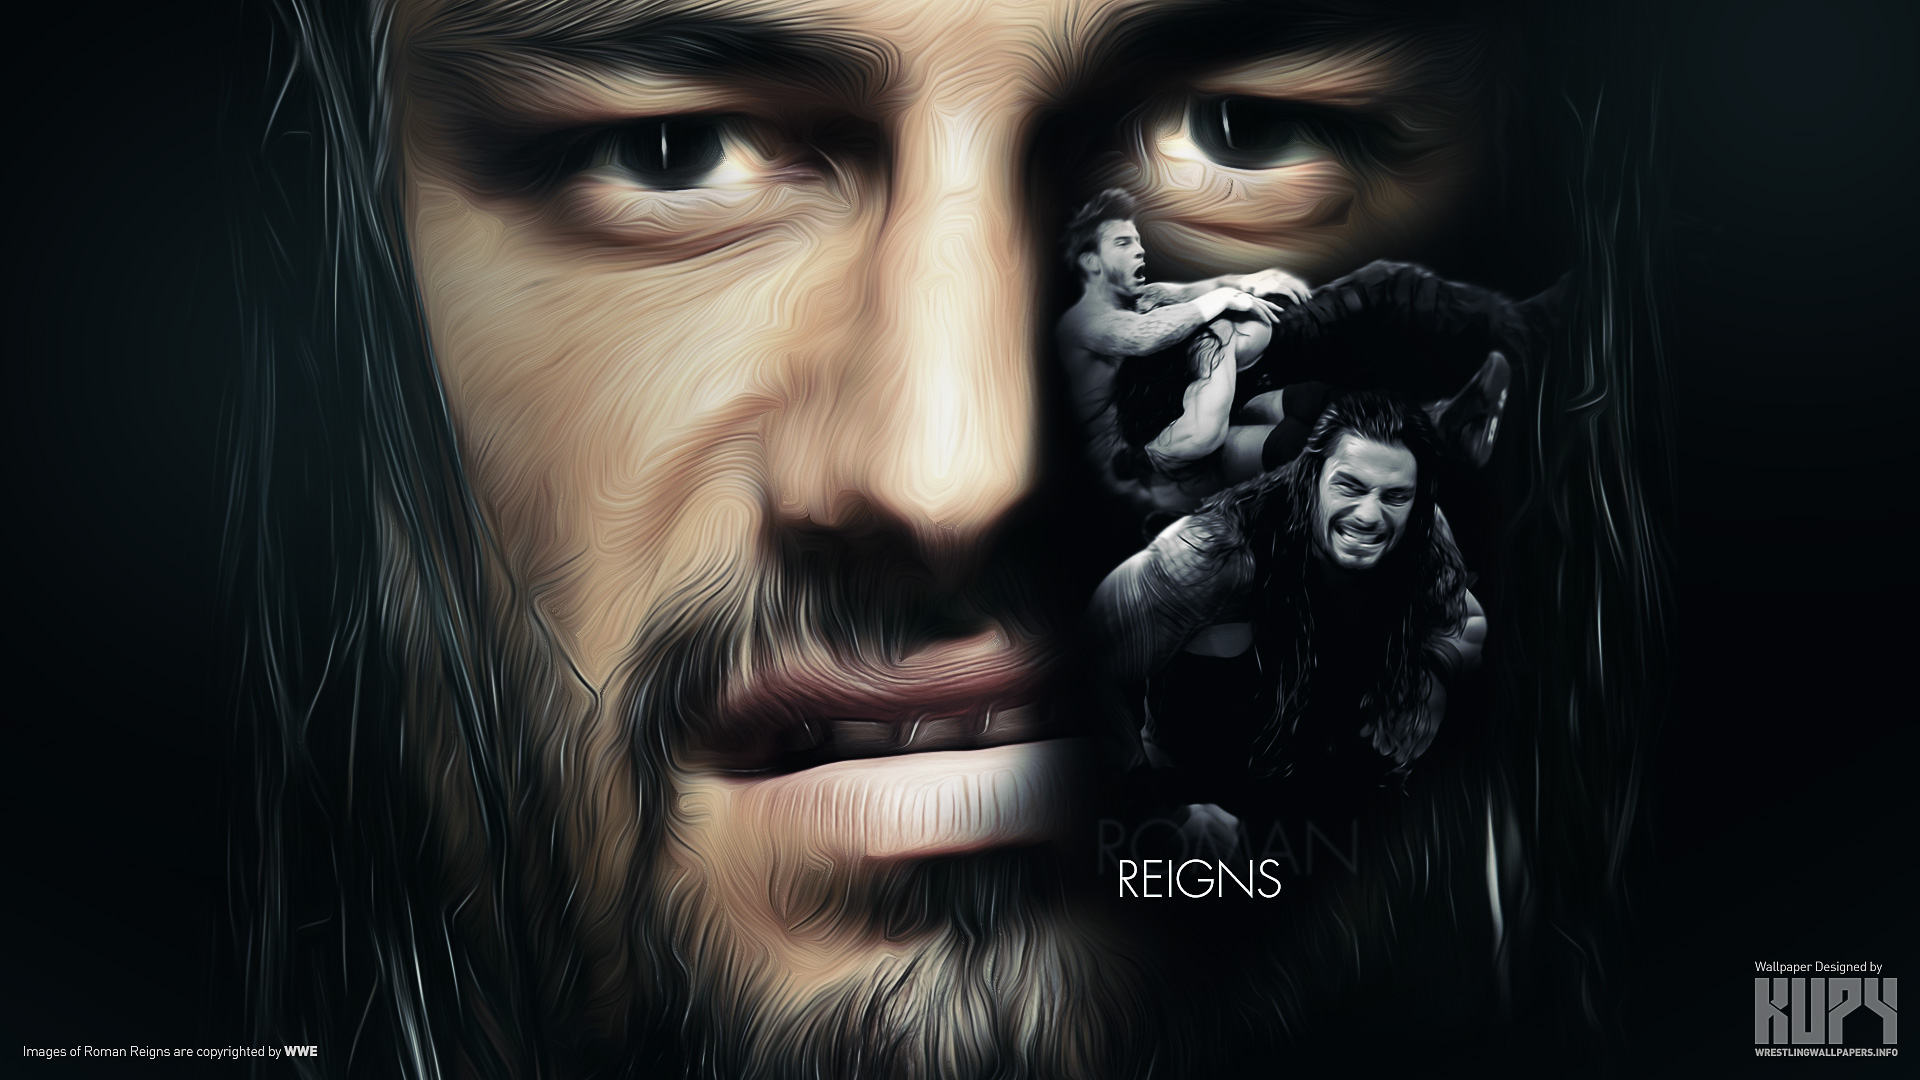 Kupywrestlingwallpapersfo the newest wrestling wallpapers on roman reigns wwe wallpaper 19201200 19201080 voltagebd Images